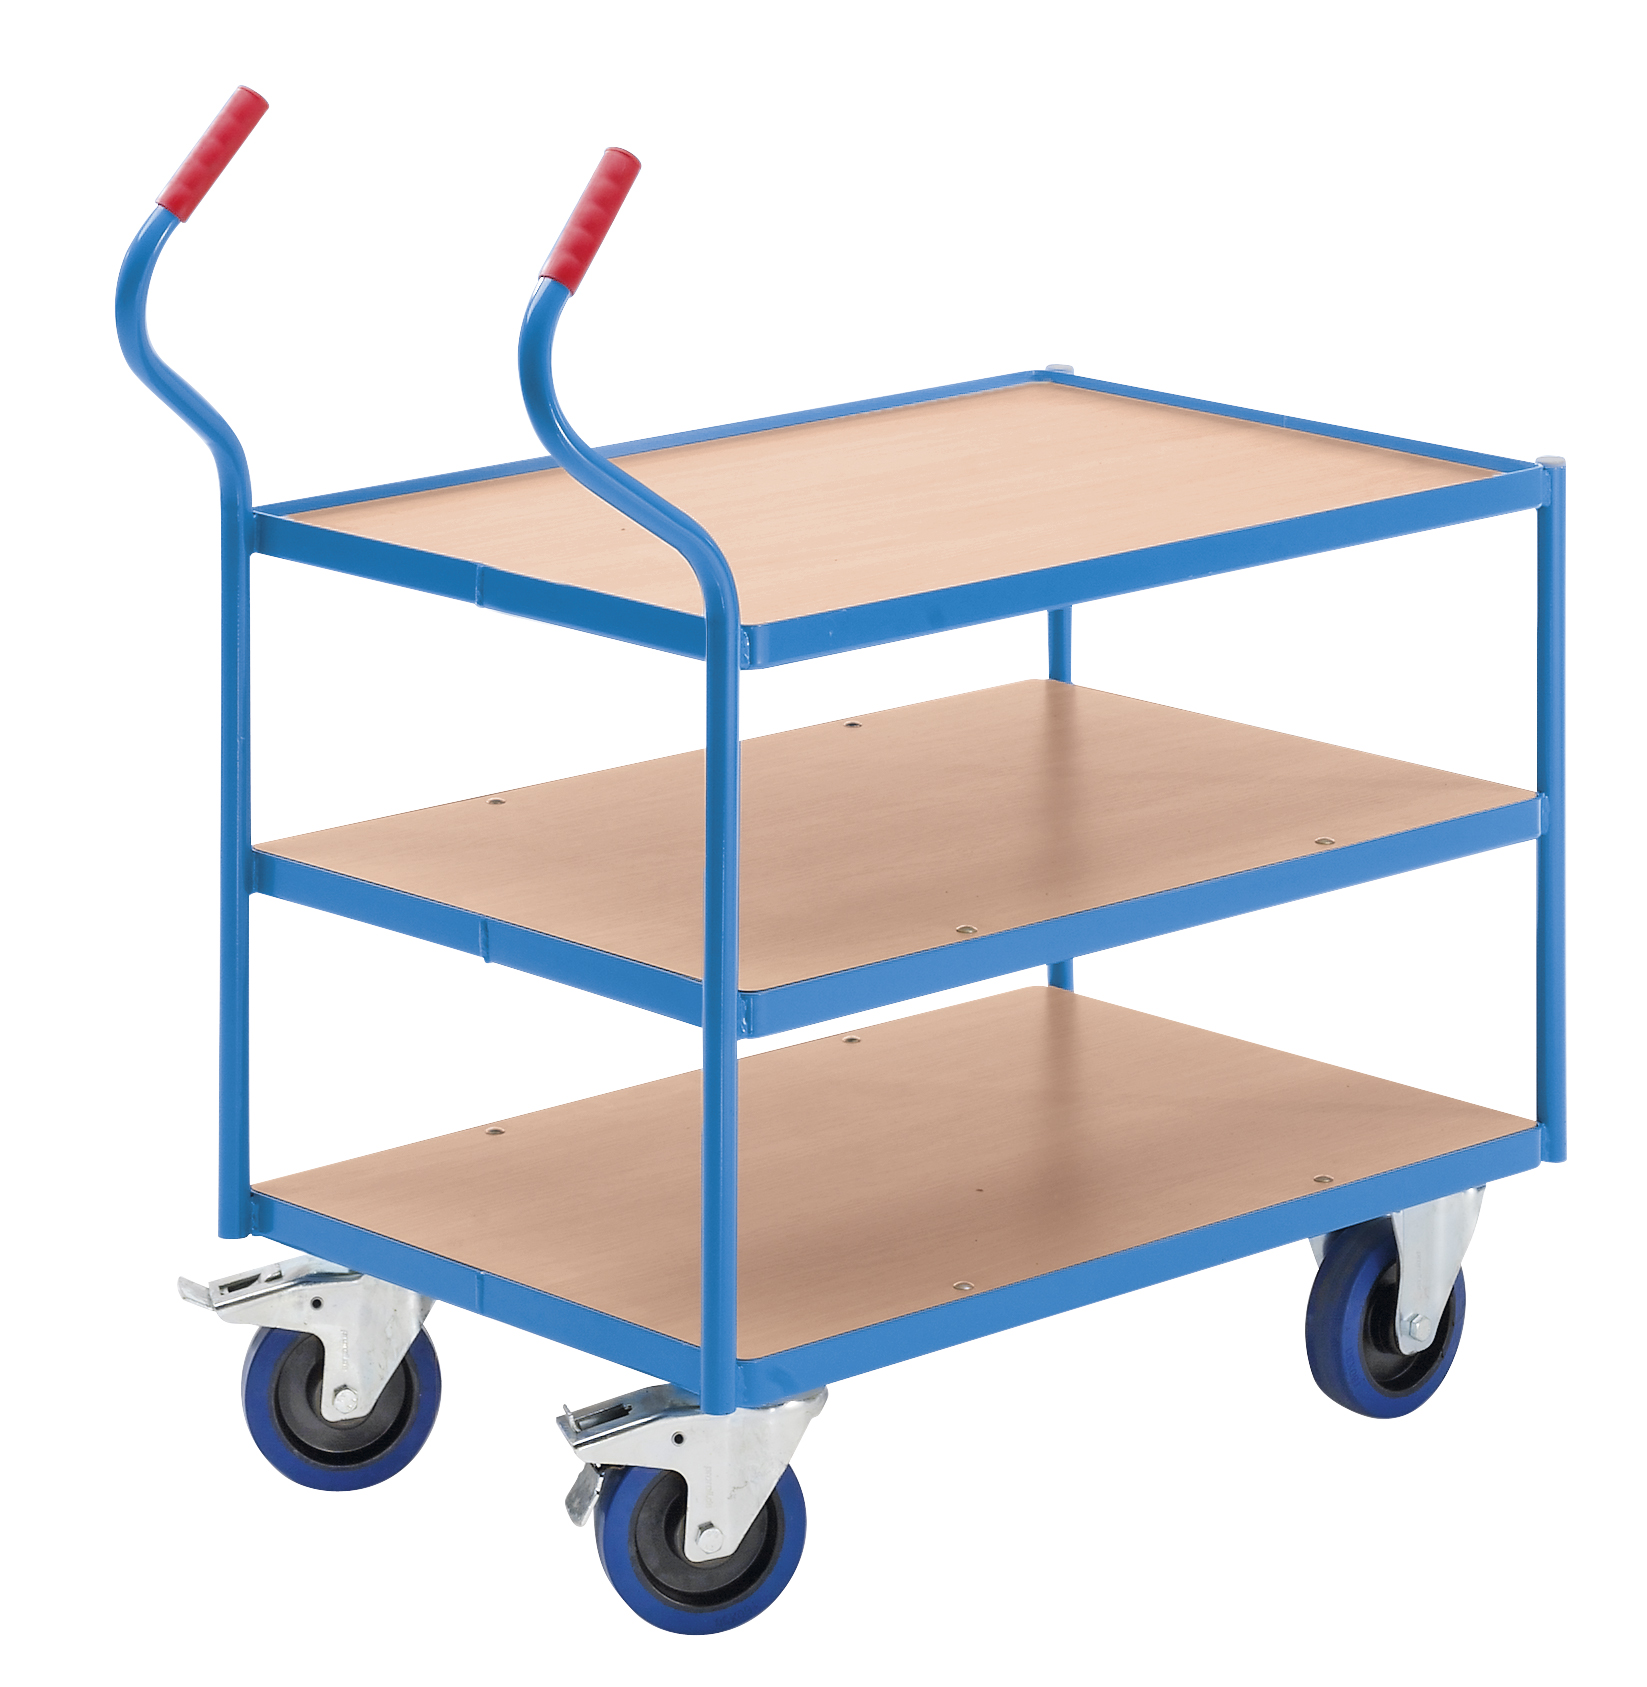 Ergonomic table trolley 12600113